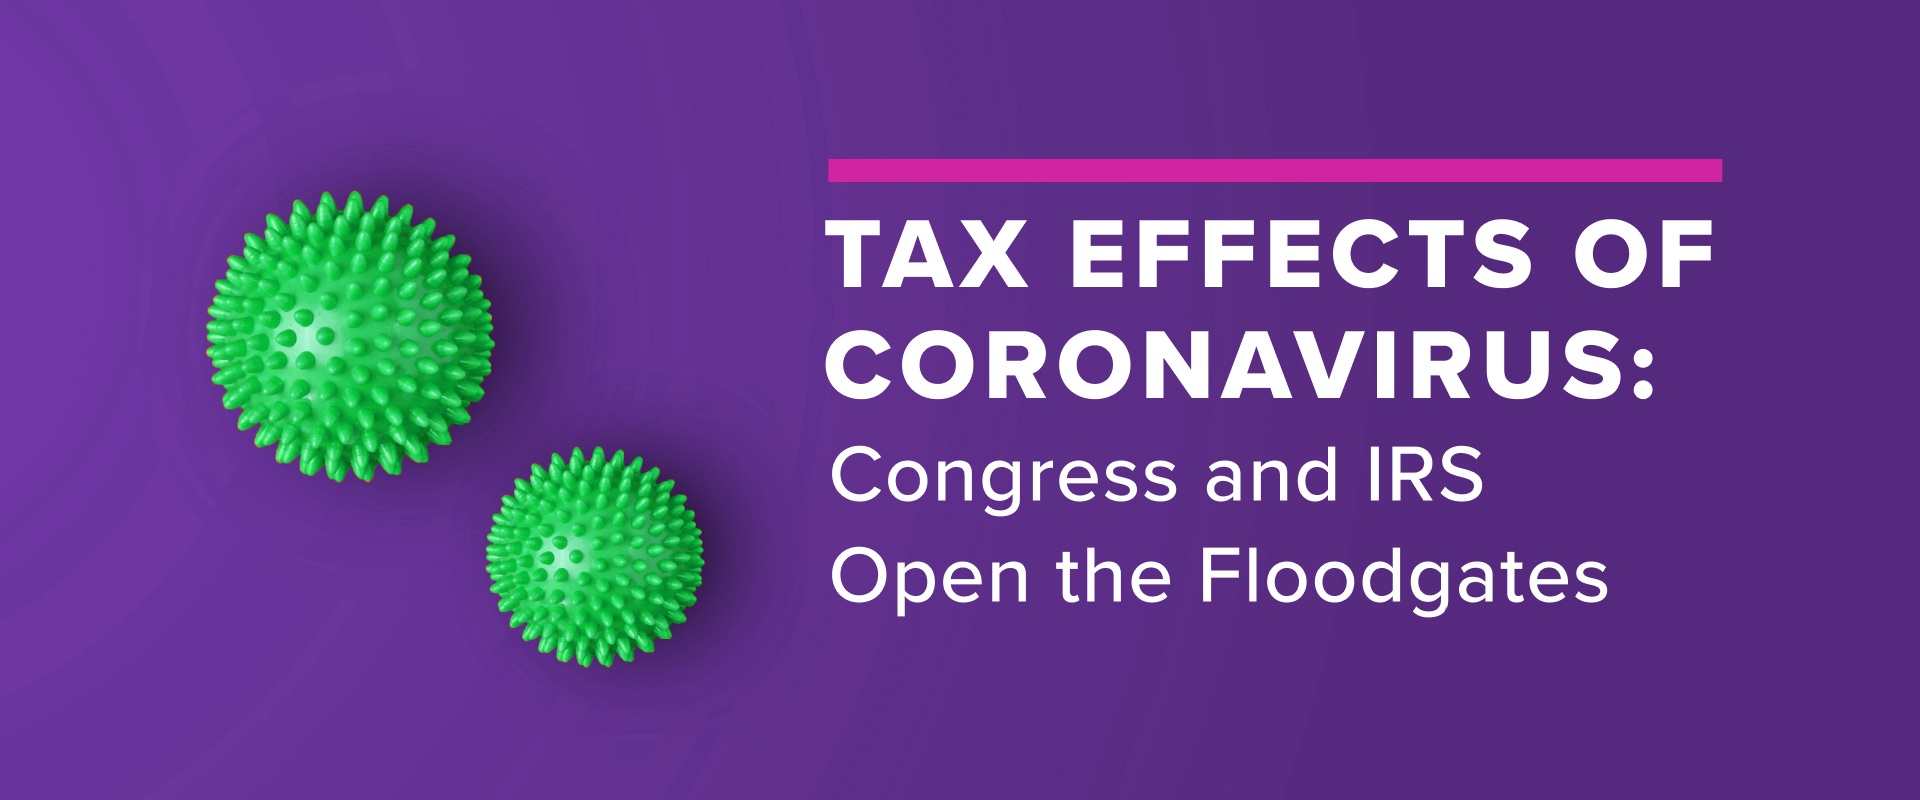 Tax Effects of Coronavirus & CARES Act : Congress and IRS Open the Floodgates